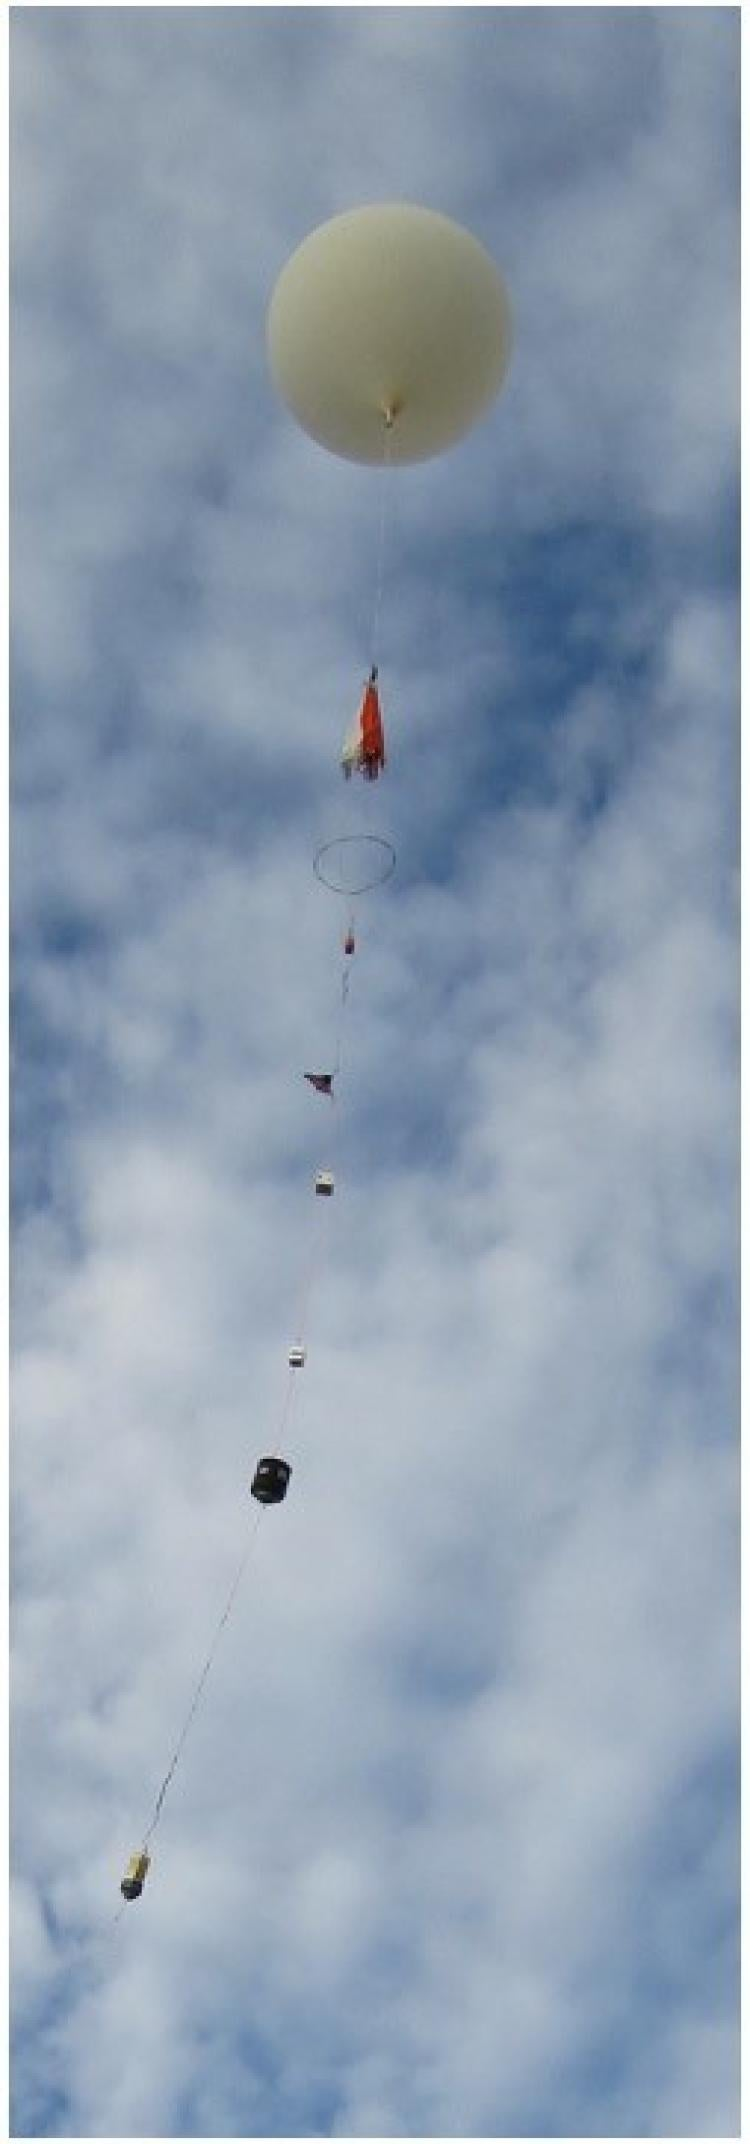 A balloon launching with payloads.